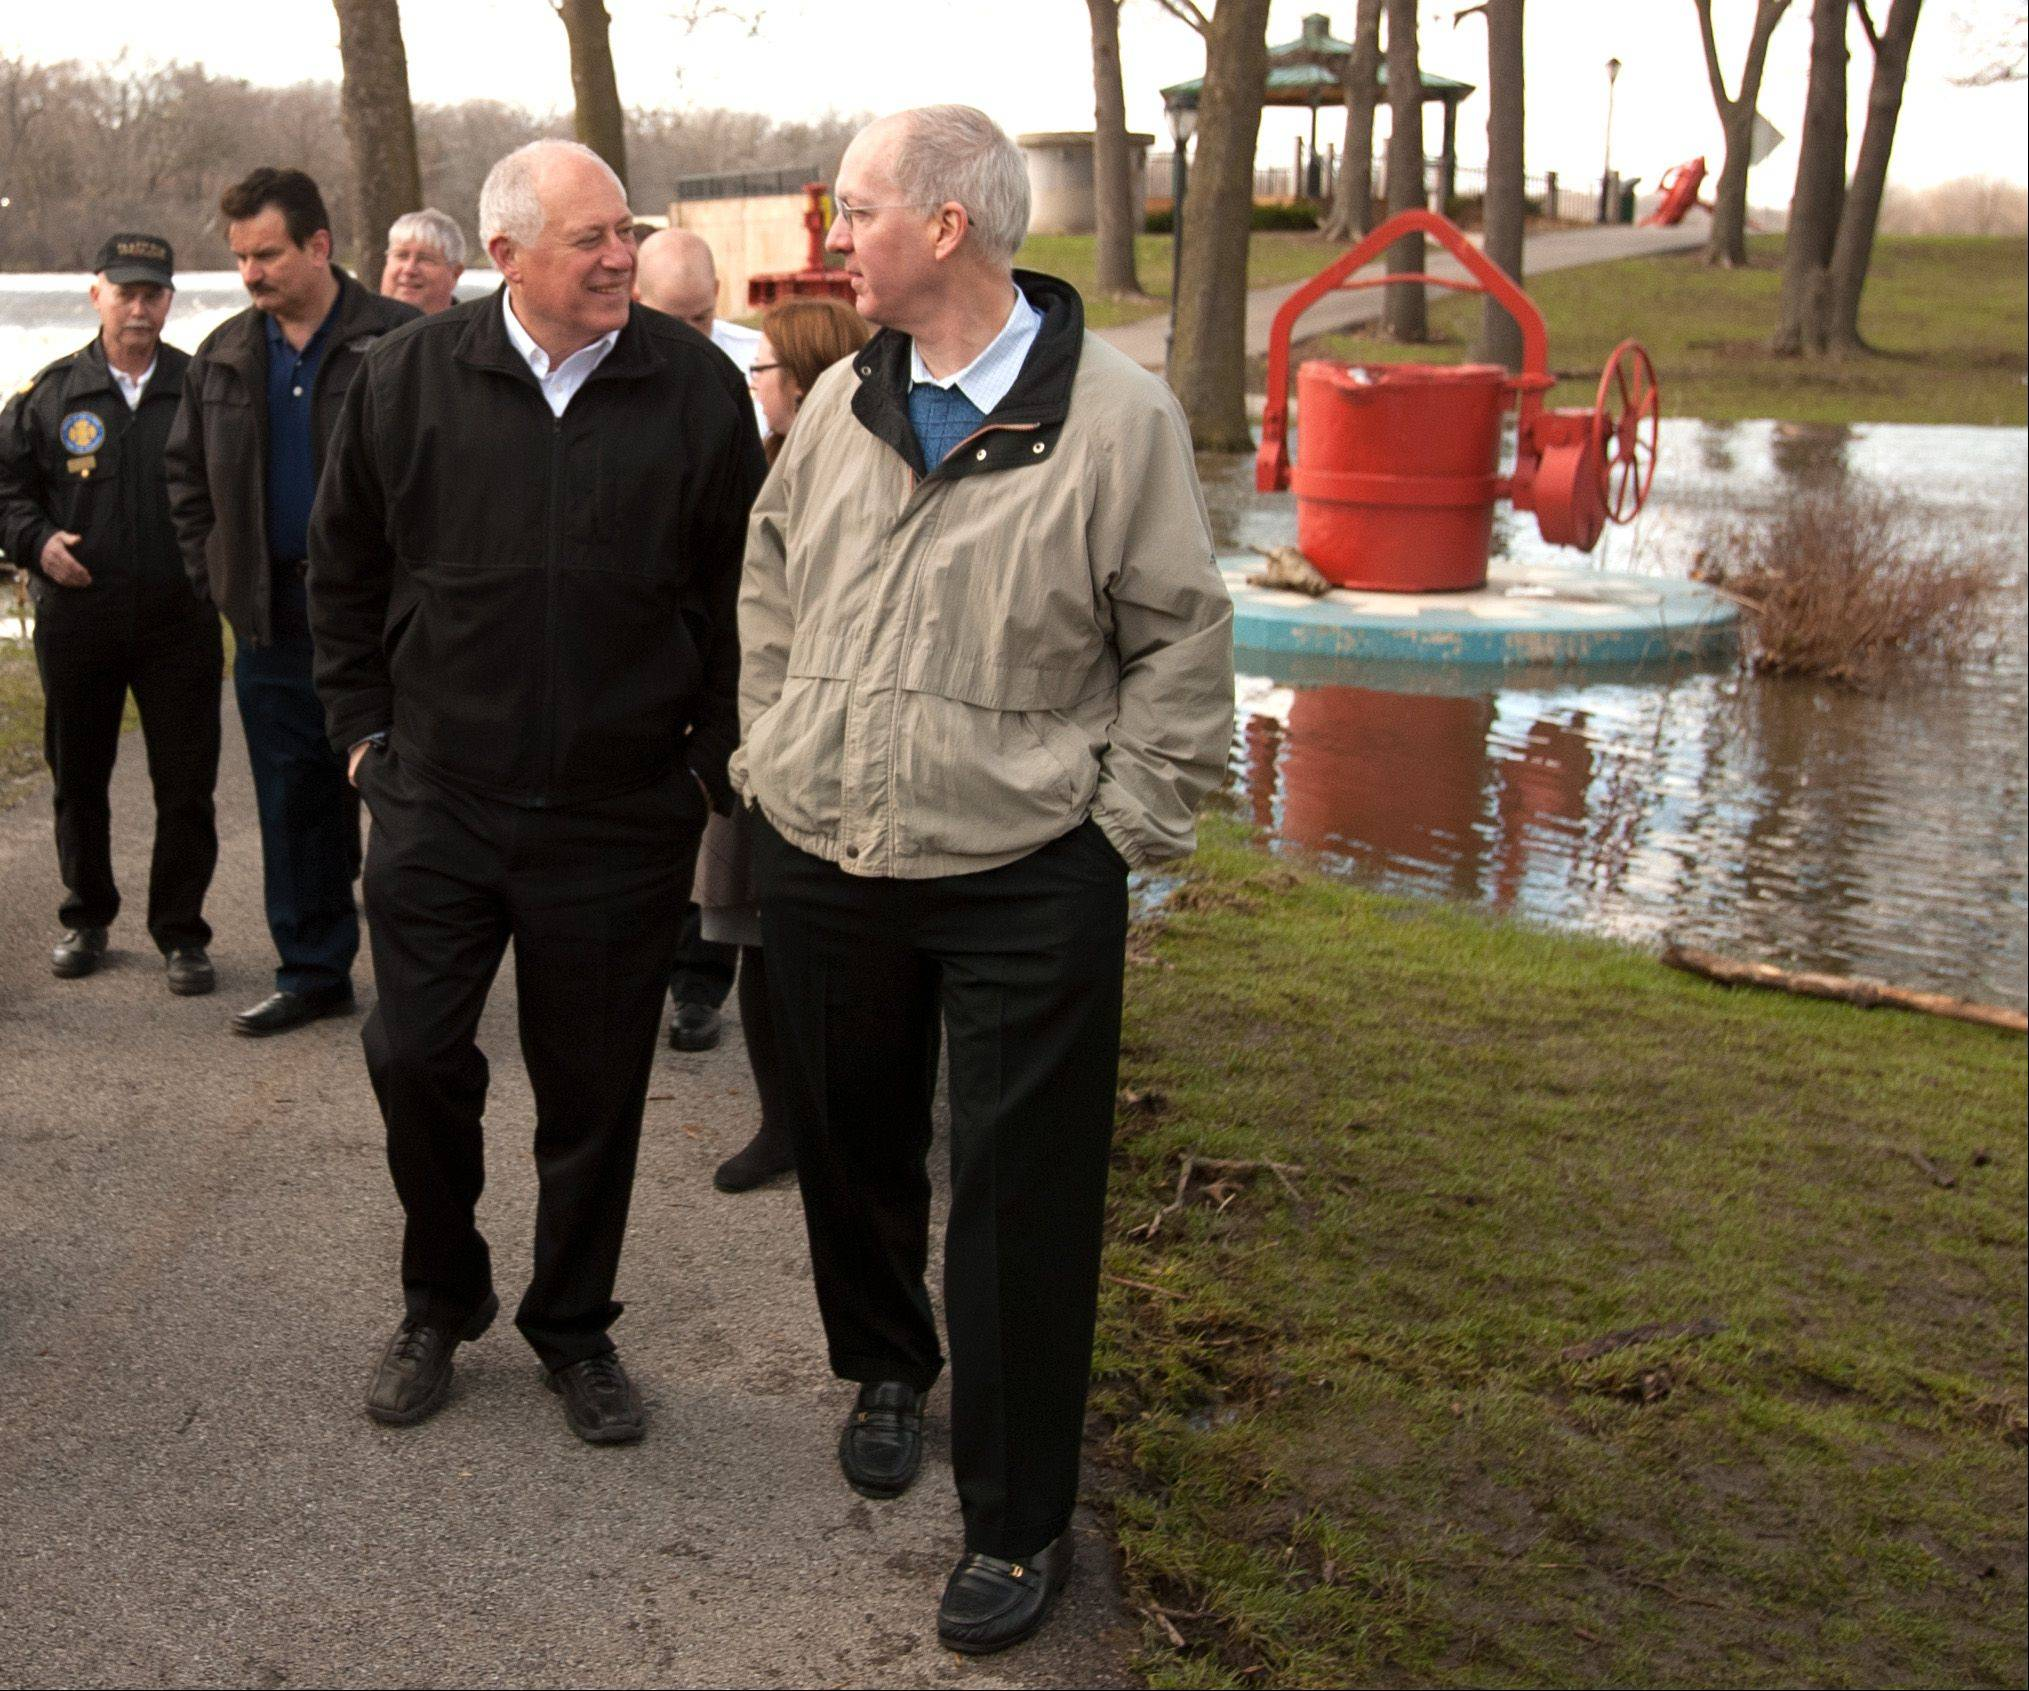 Gov. Pat Quinn addresses flooding concerns throughout the state, following a press conference along the Fox River in North Aurora. He asked for U.S Rep. Bill Foster's help in Washington.